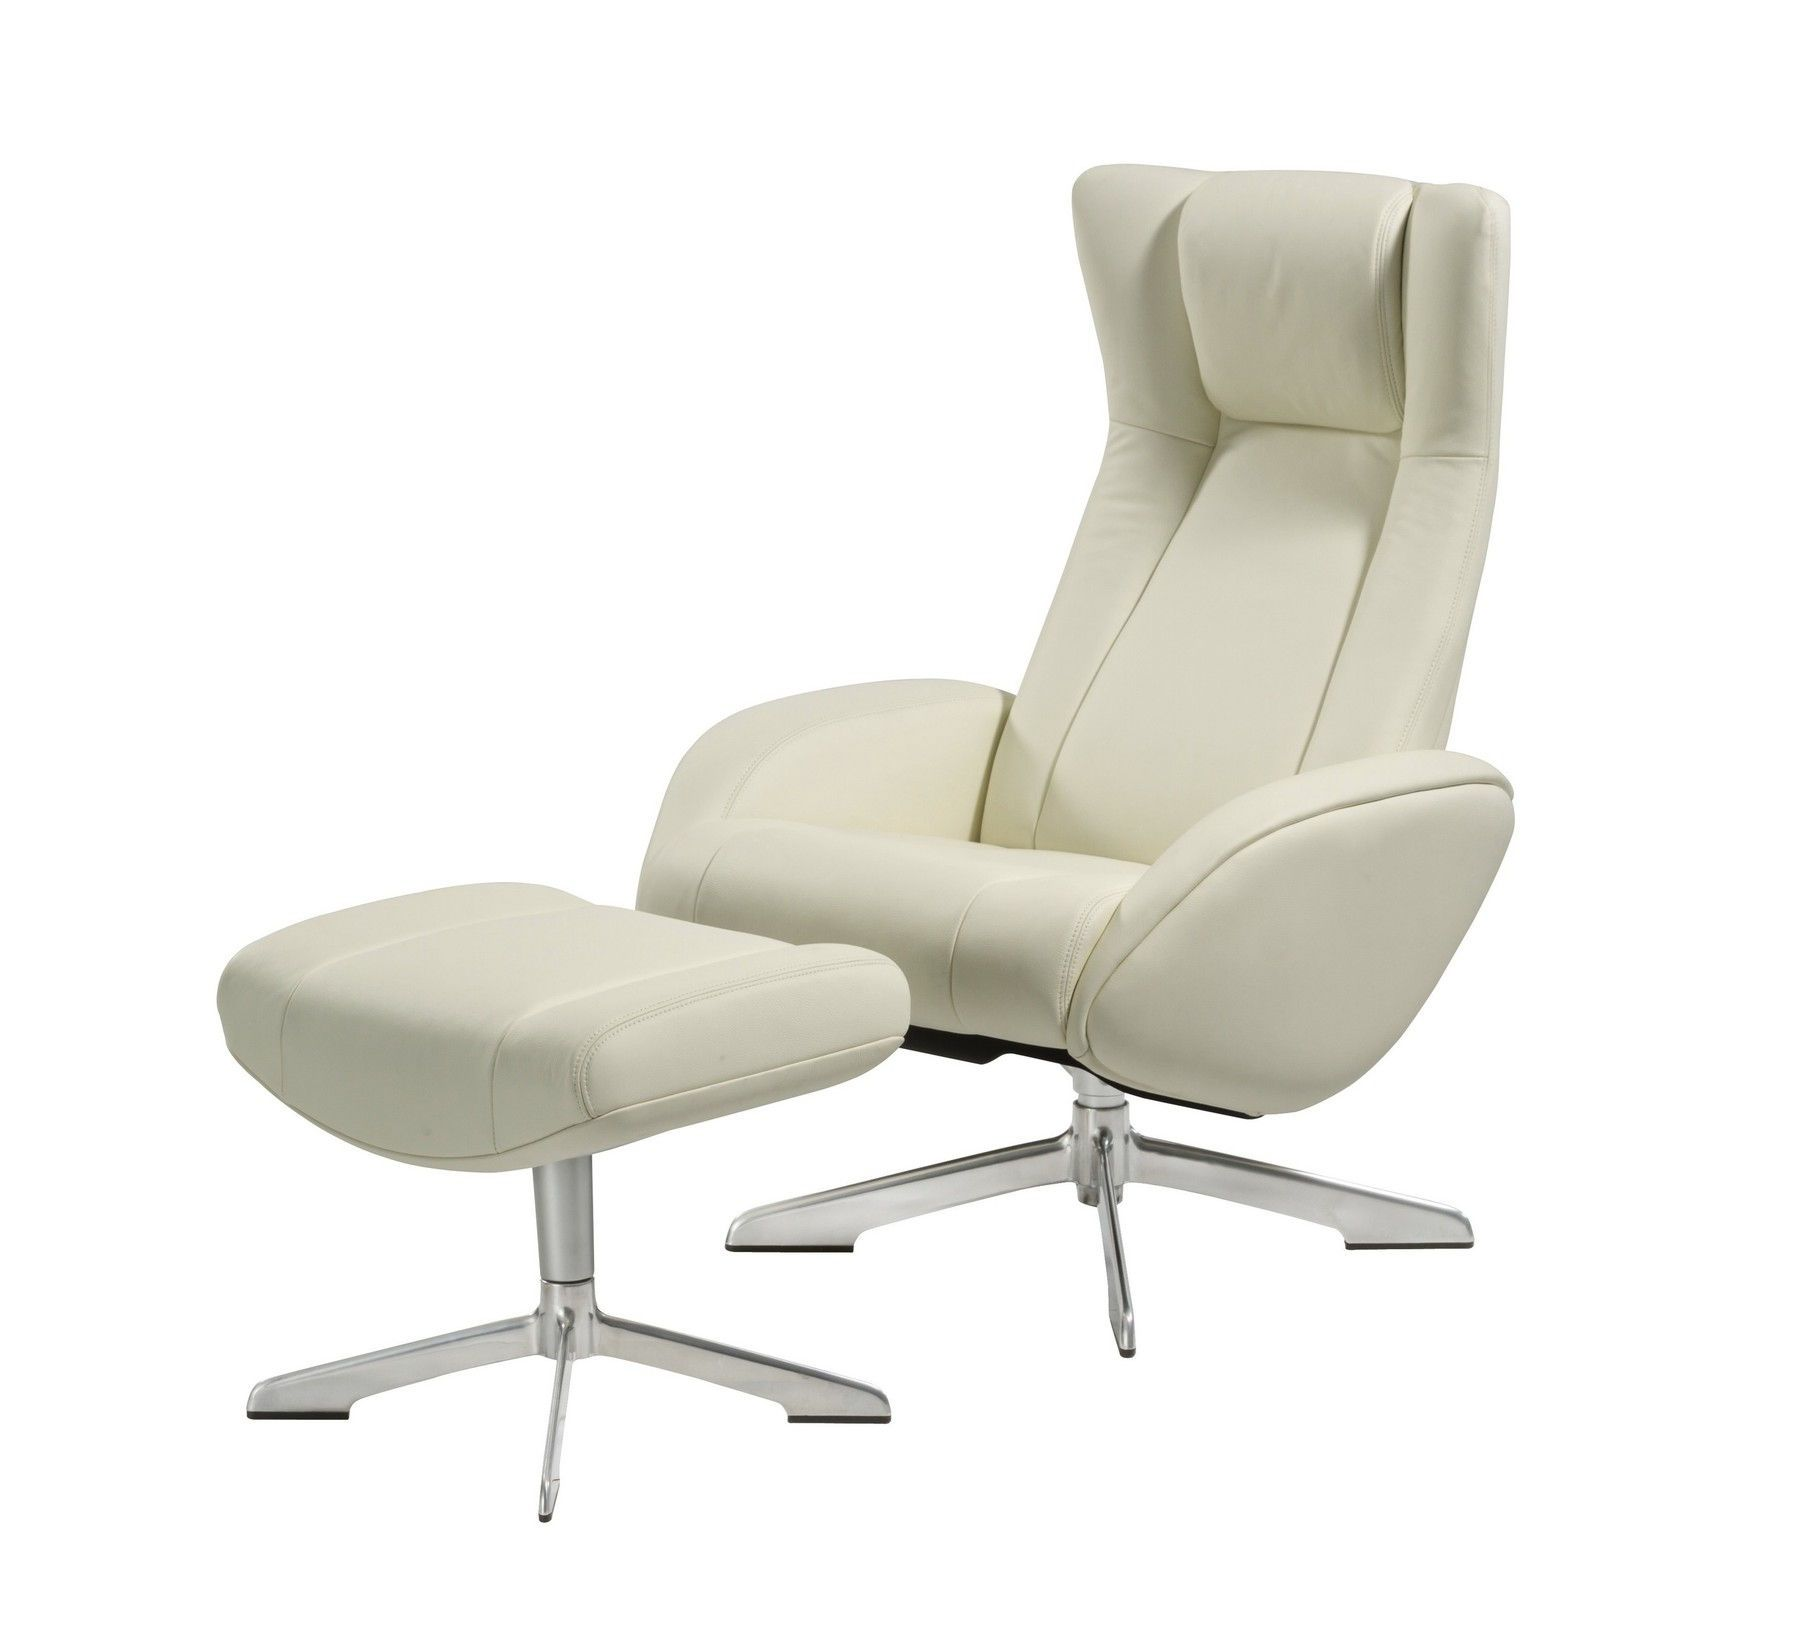 Maya White Chair + Ottoman in 2020 | Recliner with ottoman